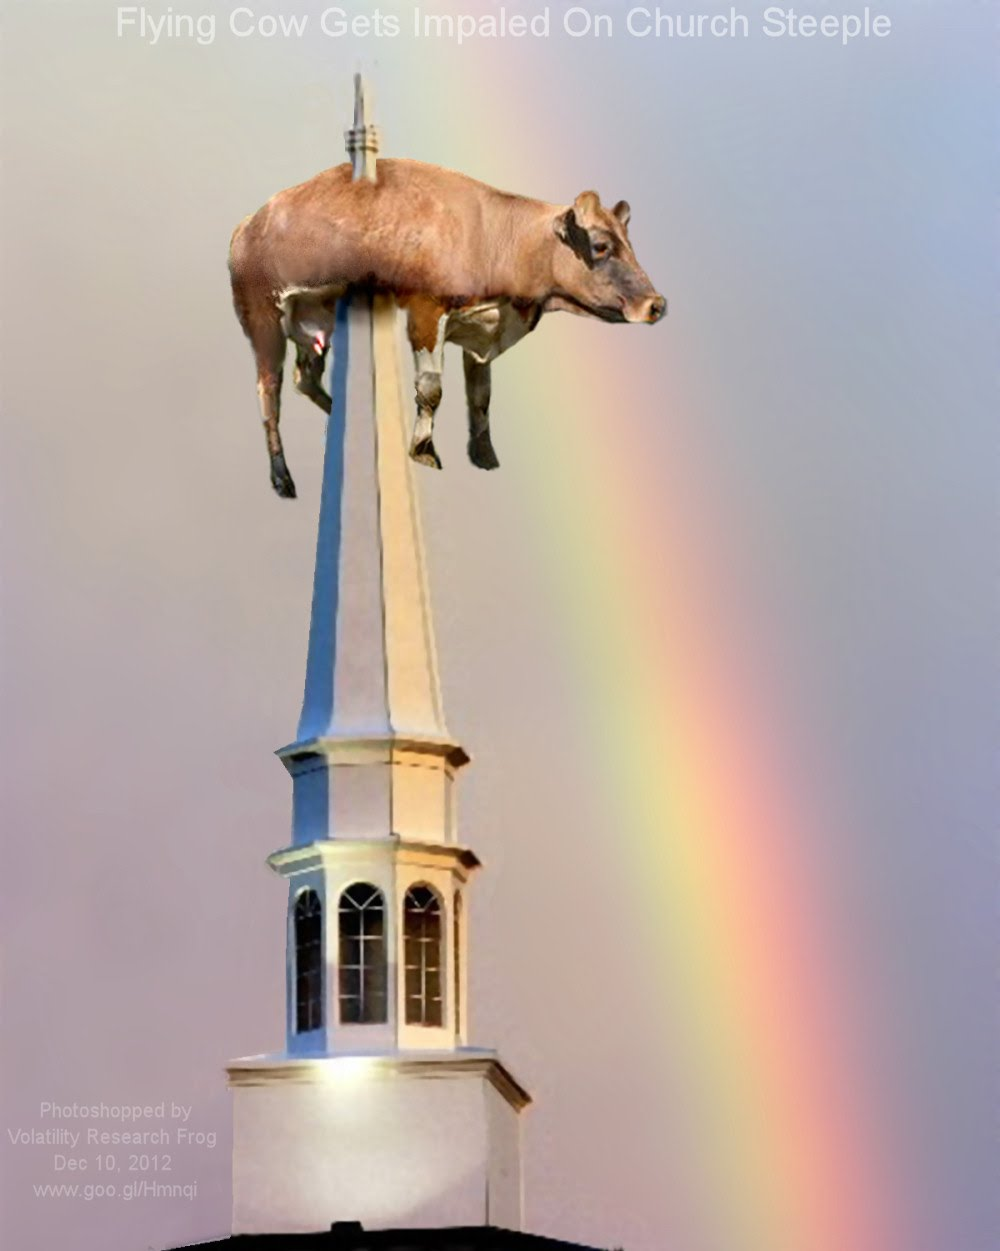 Dec 10, 2012  Flying Cow Gets Impaled On Church Steeple